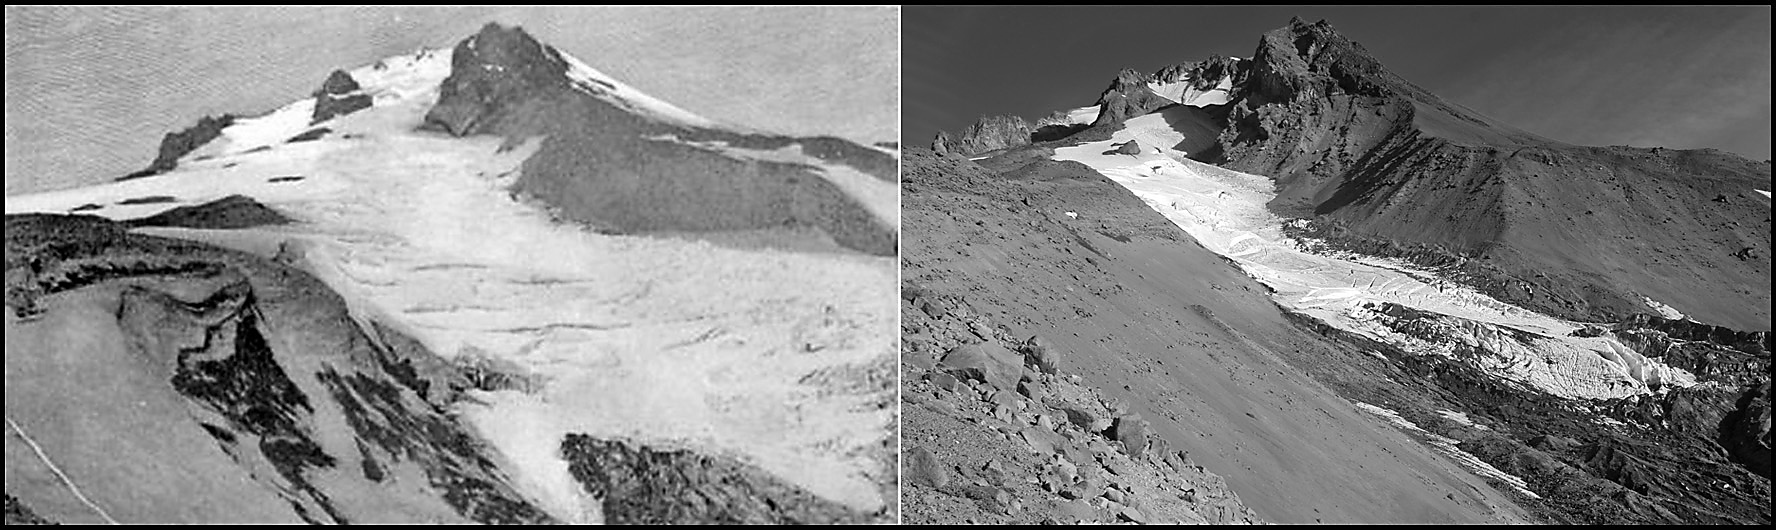 White River Glacier 1902/2010